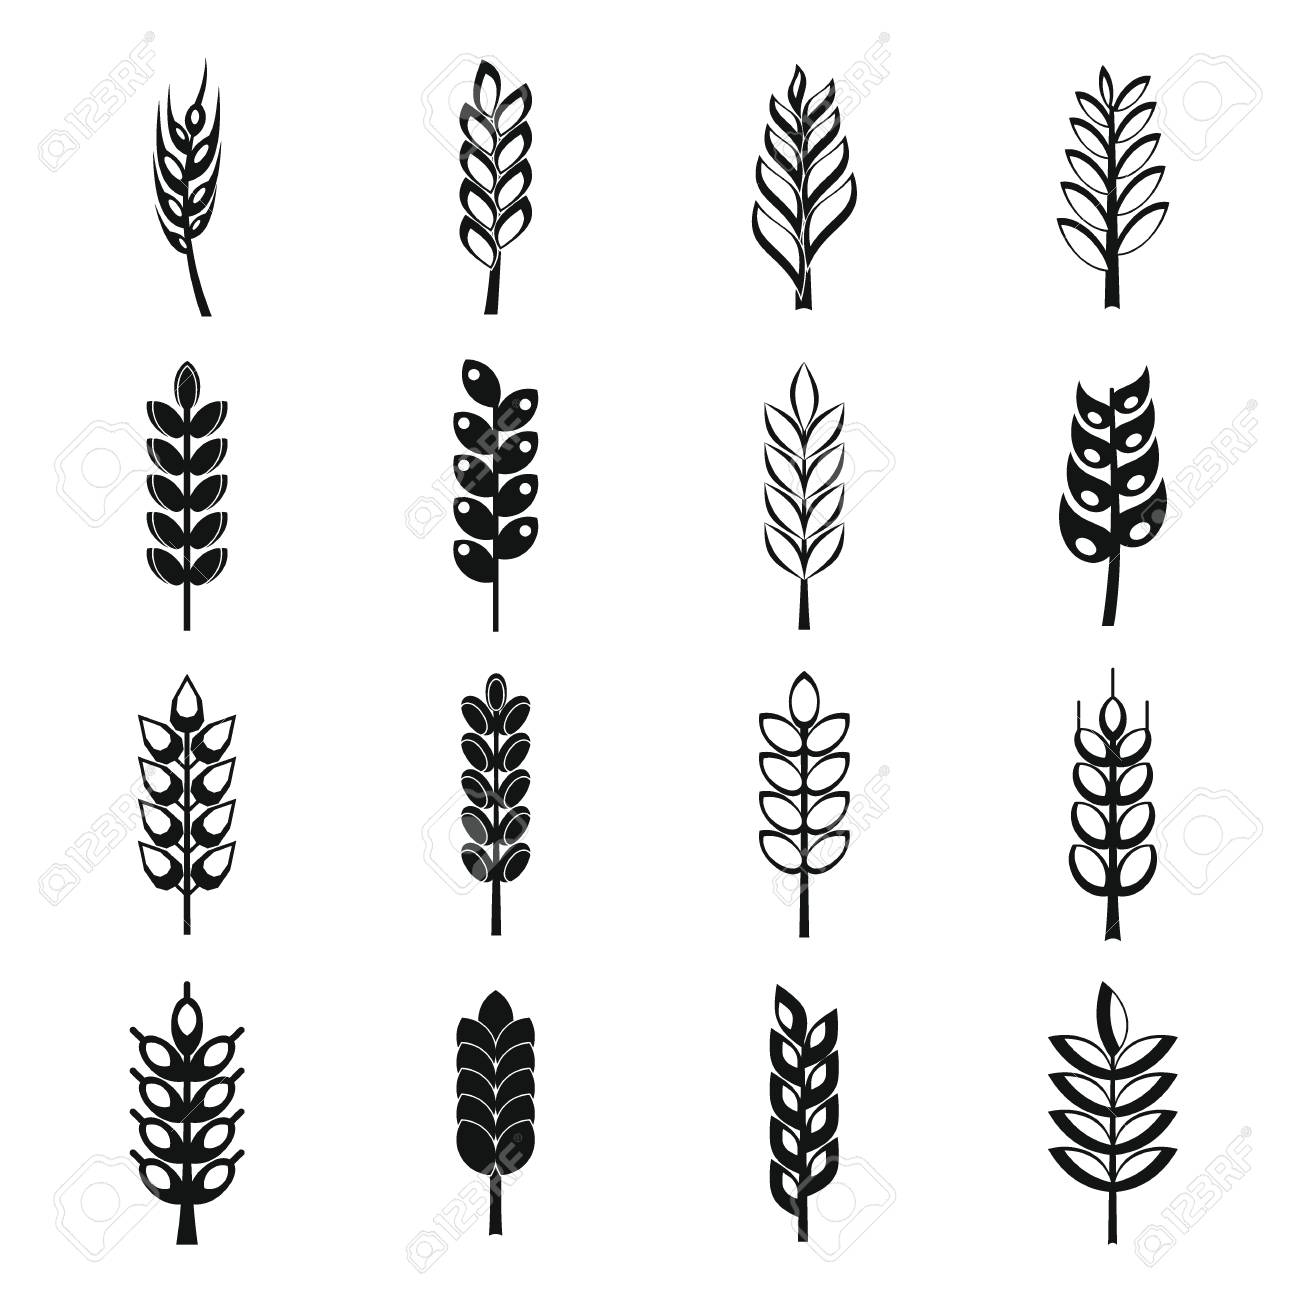 hight resolution of ear corn icons set simple style stock vector 70800726